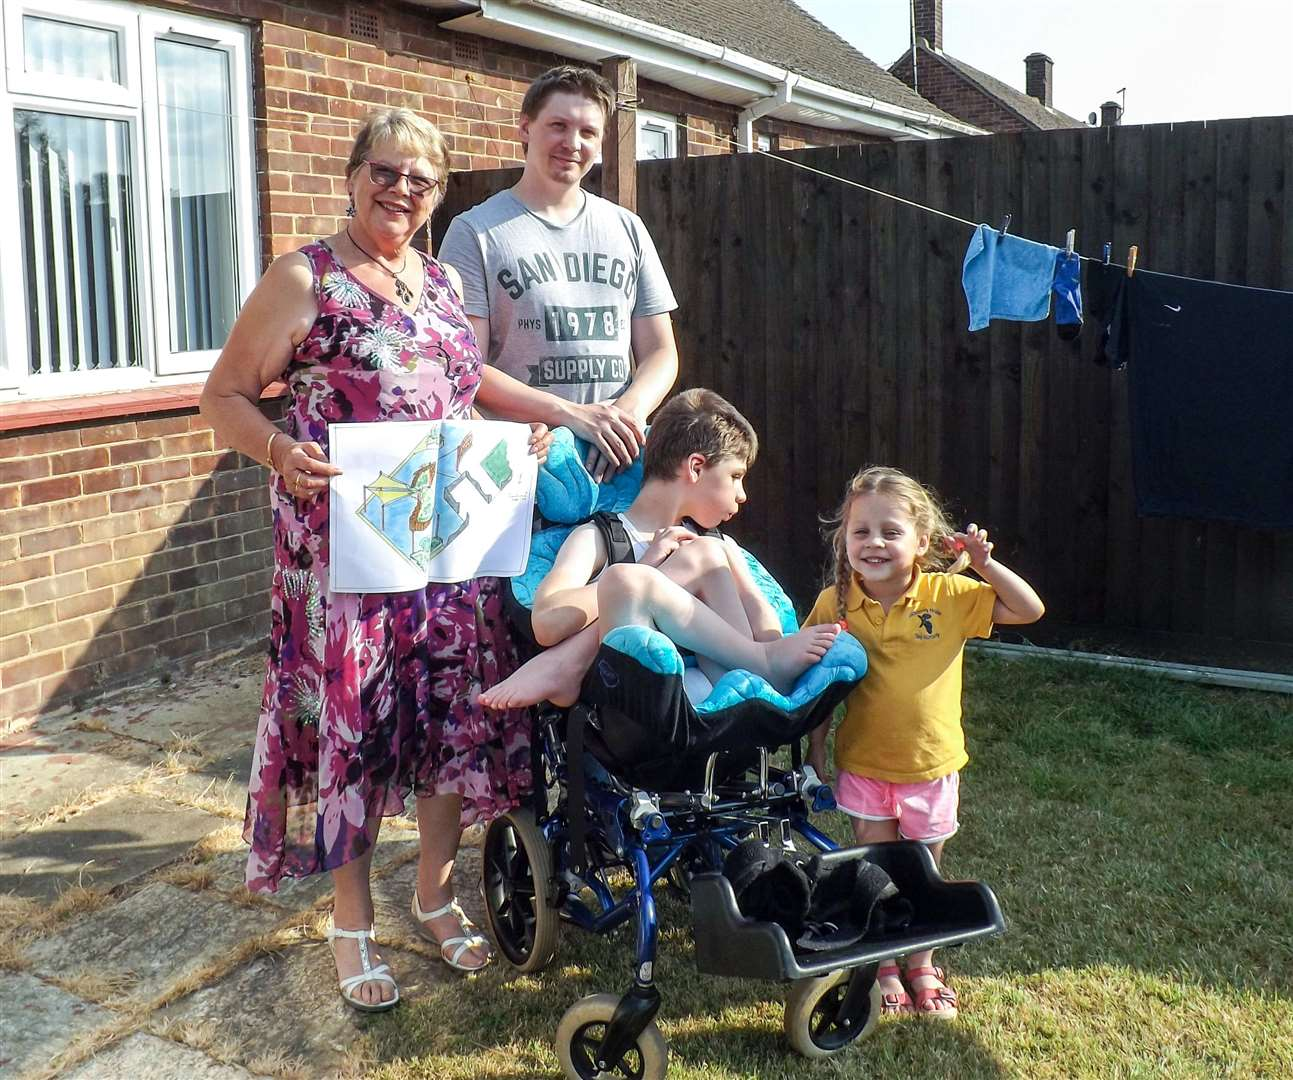 An appeal has been launched to raise money for a sensory garden for Joseph Farmer pictured here with Carol Alderton, dad Daniel and sister Isla, 3. (2949553)